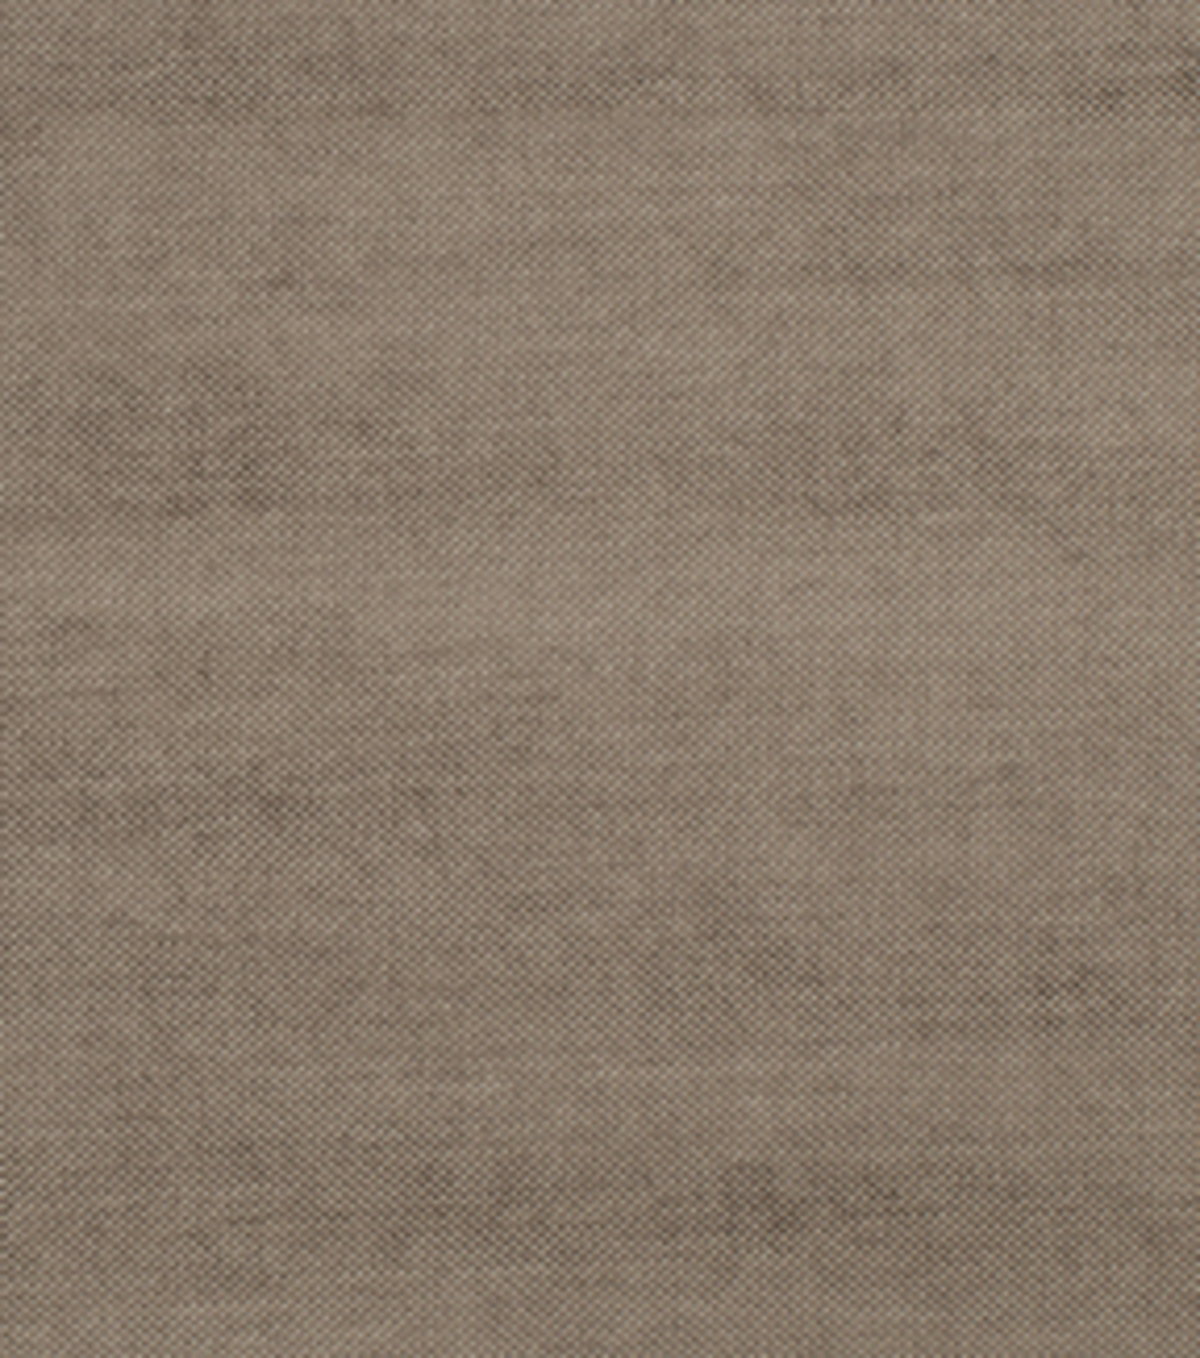 Home Decor 8\u0022x8\u0022 Fabric Swatch-Signature Series Claudel Mink